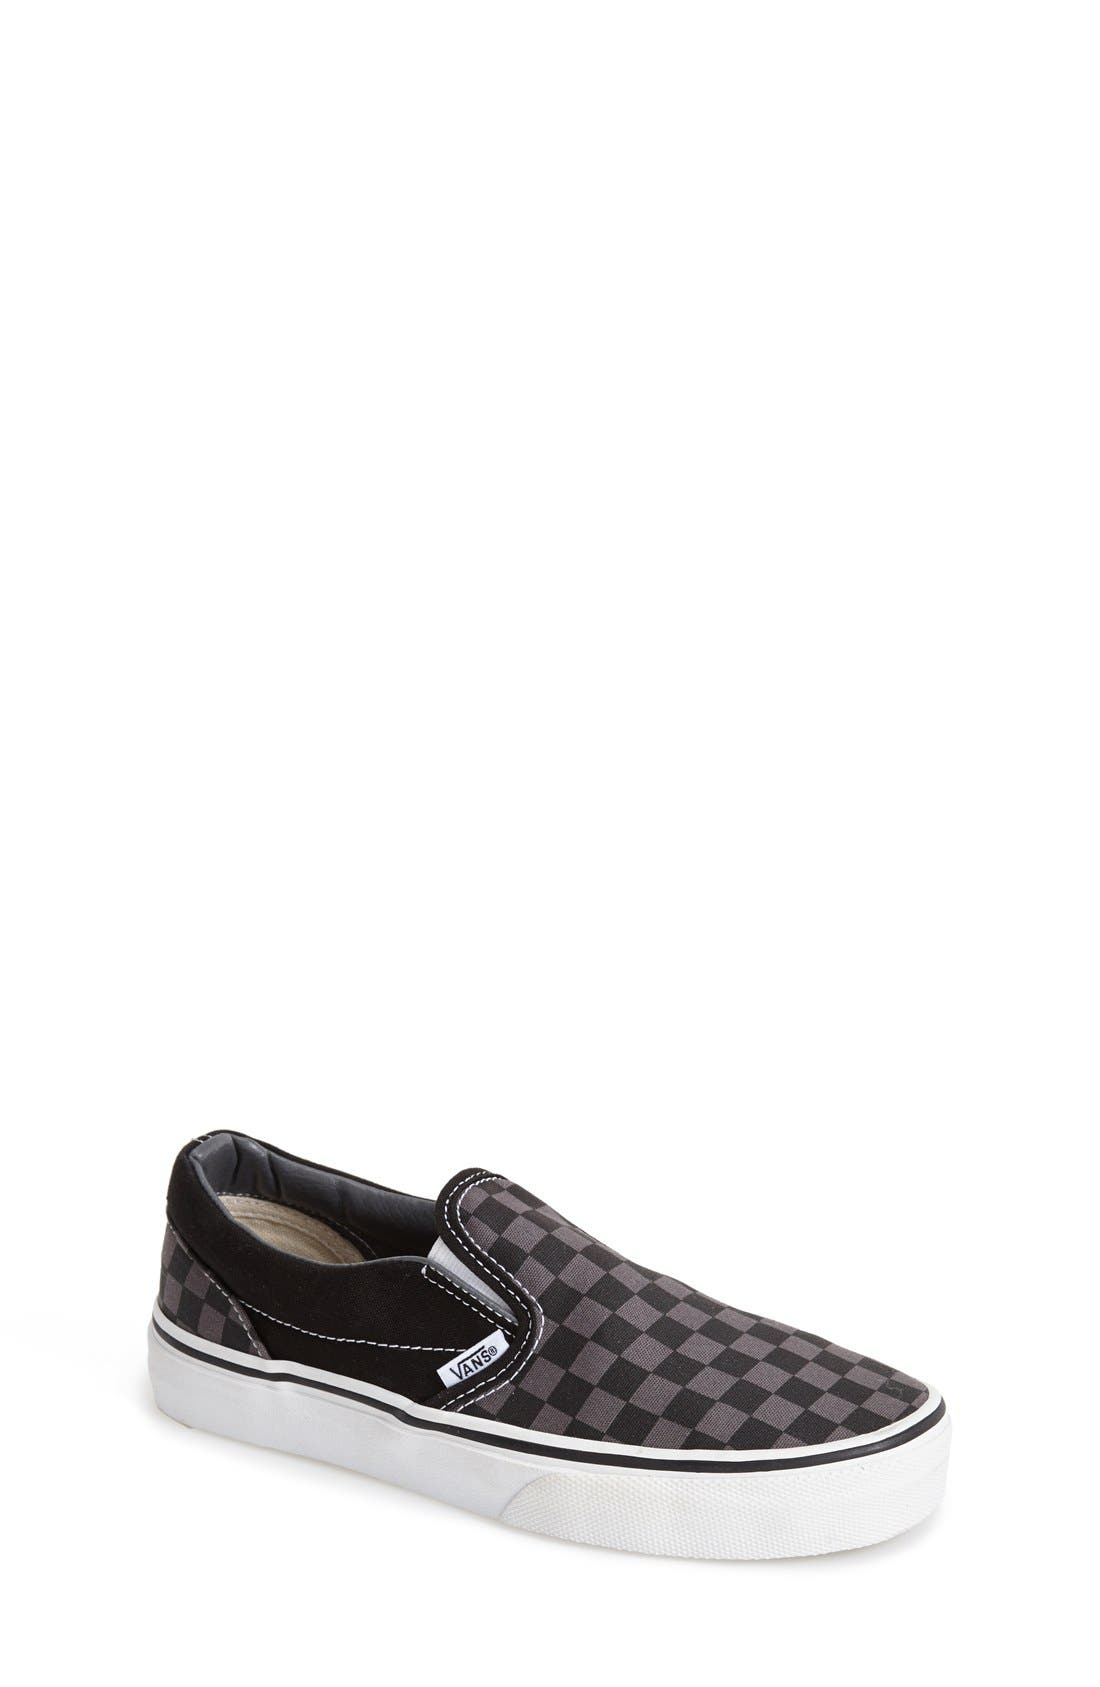 'Classic - Checker' Slip-On,                             Main thumbnail 1, color,                             CHECKERBOARD/ BLACK/ PEWTER